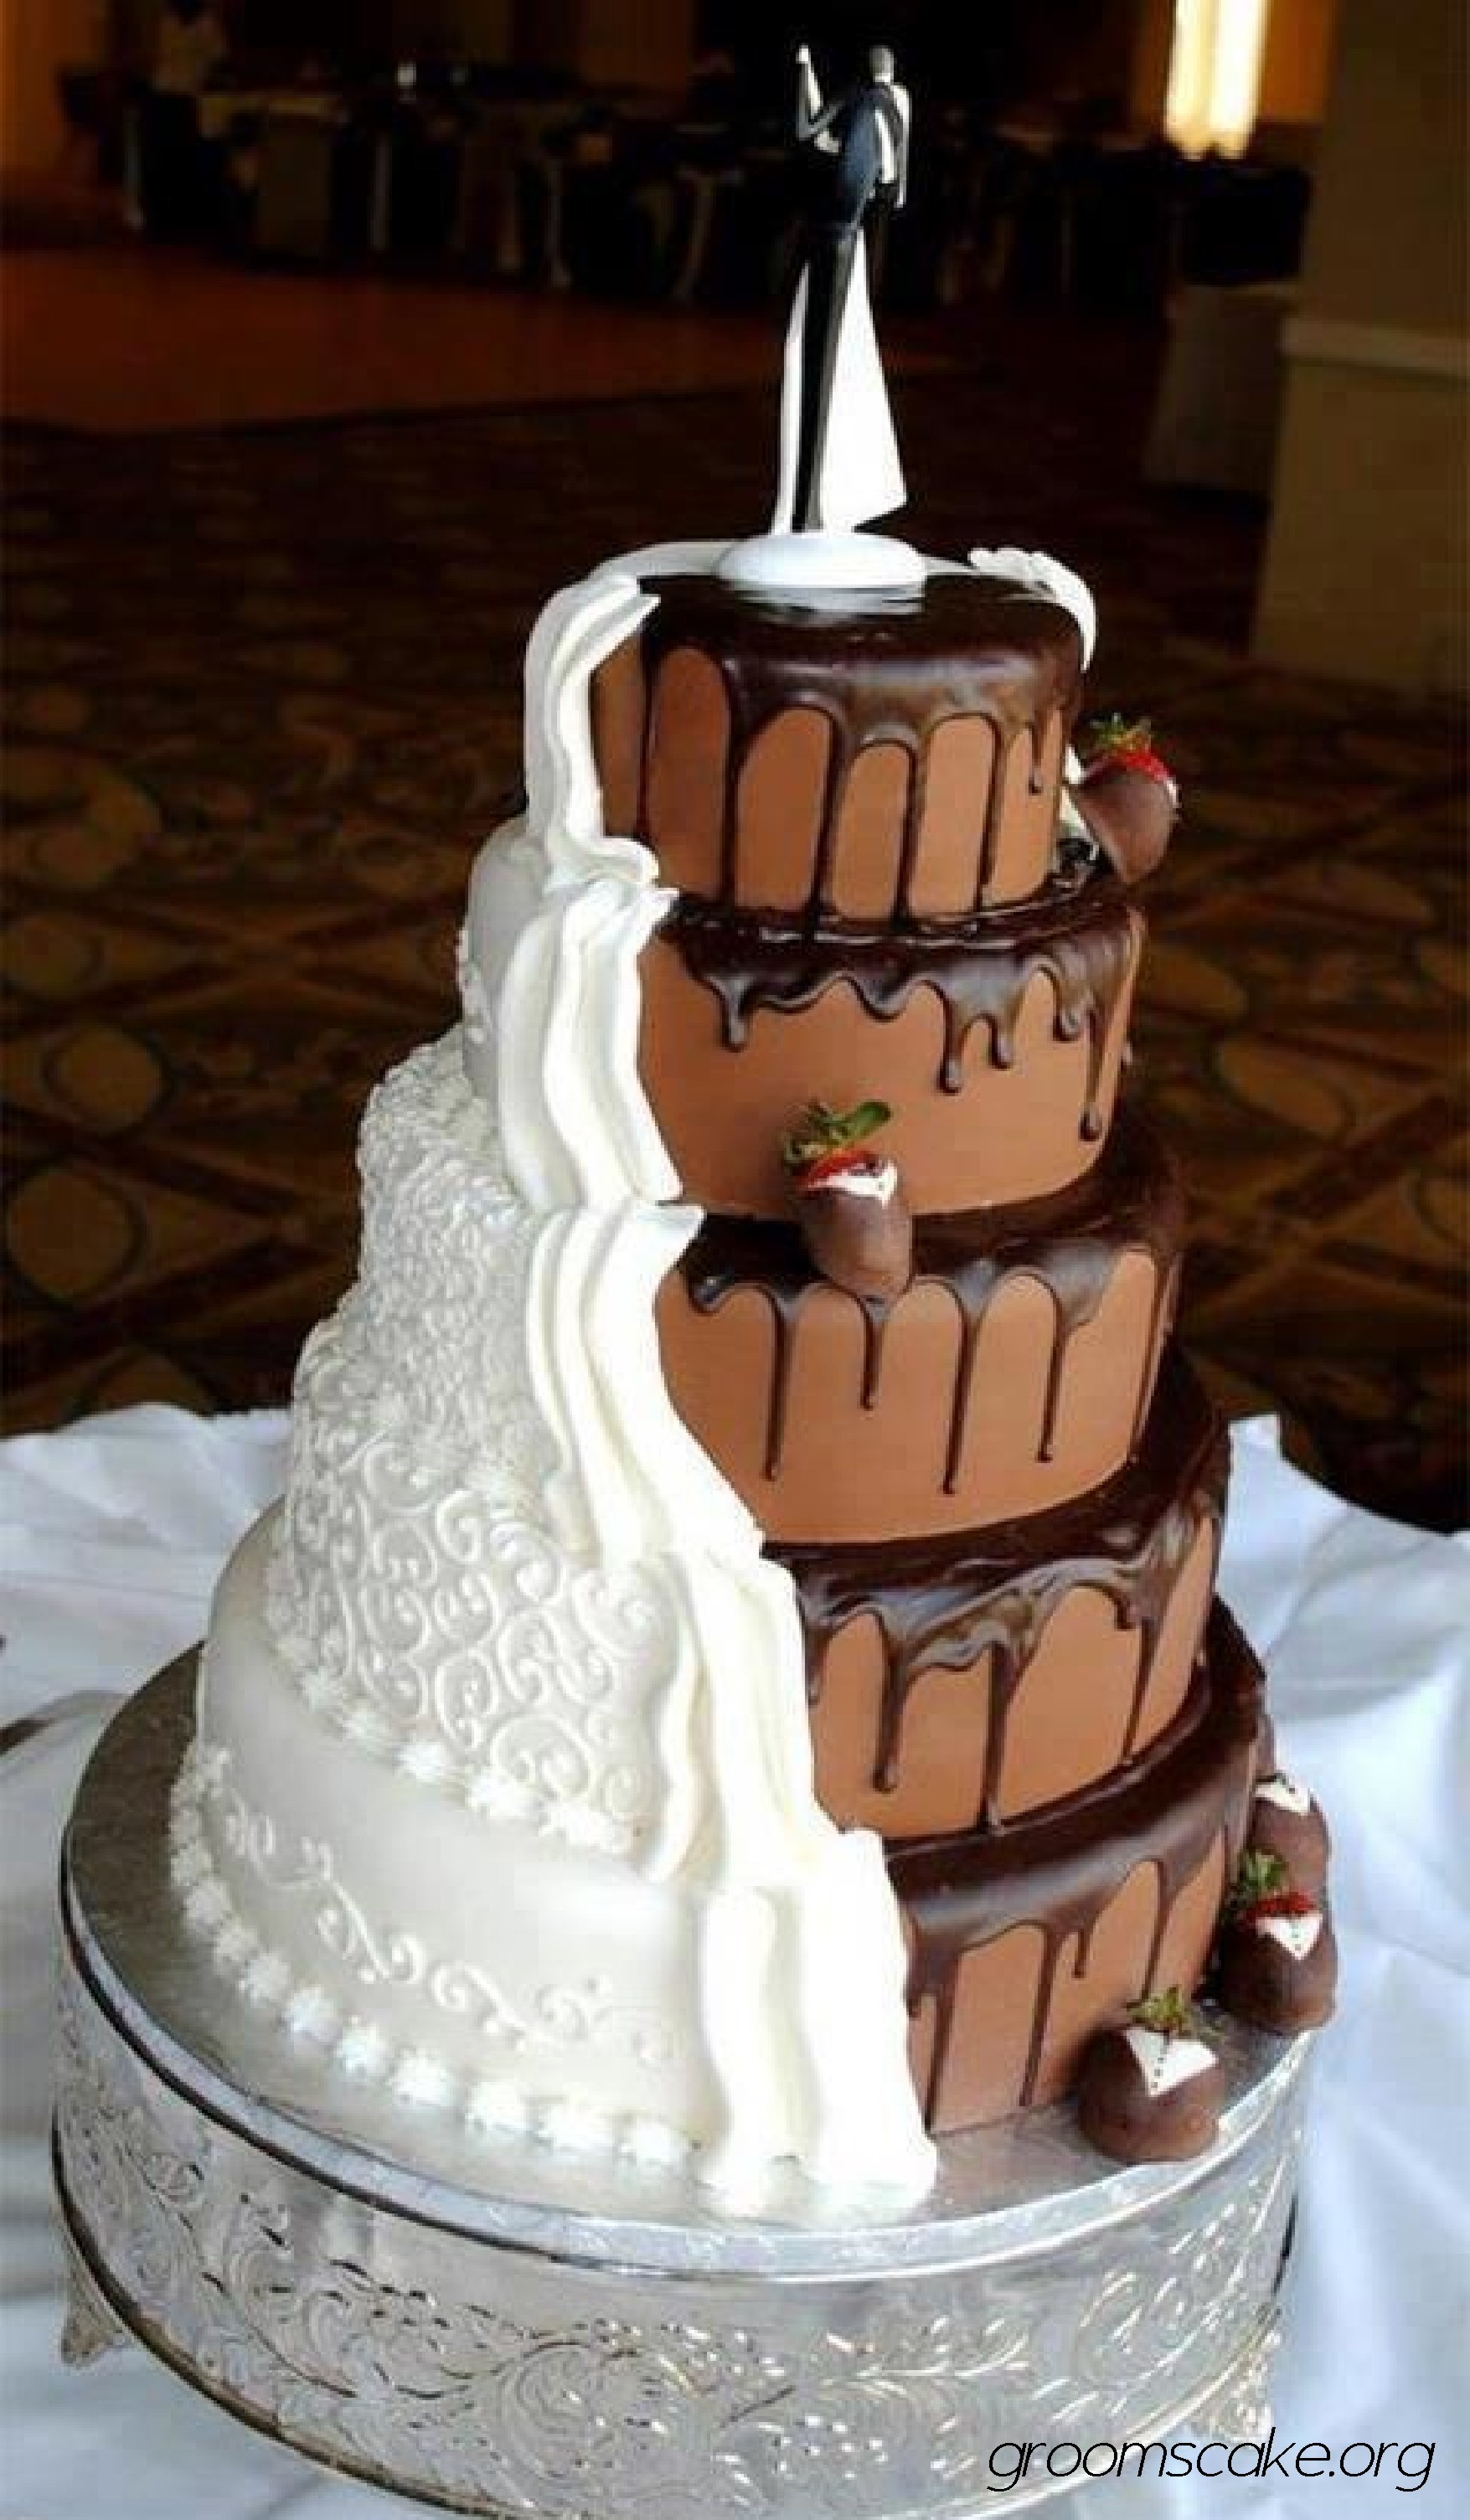 11 Photos of Love Groom Cakes